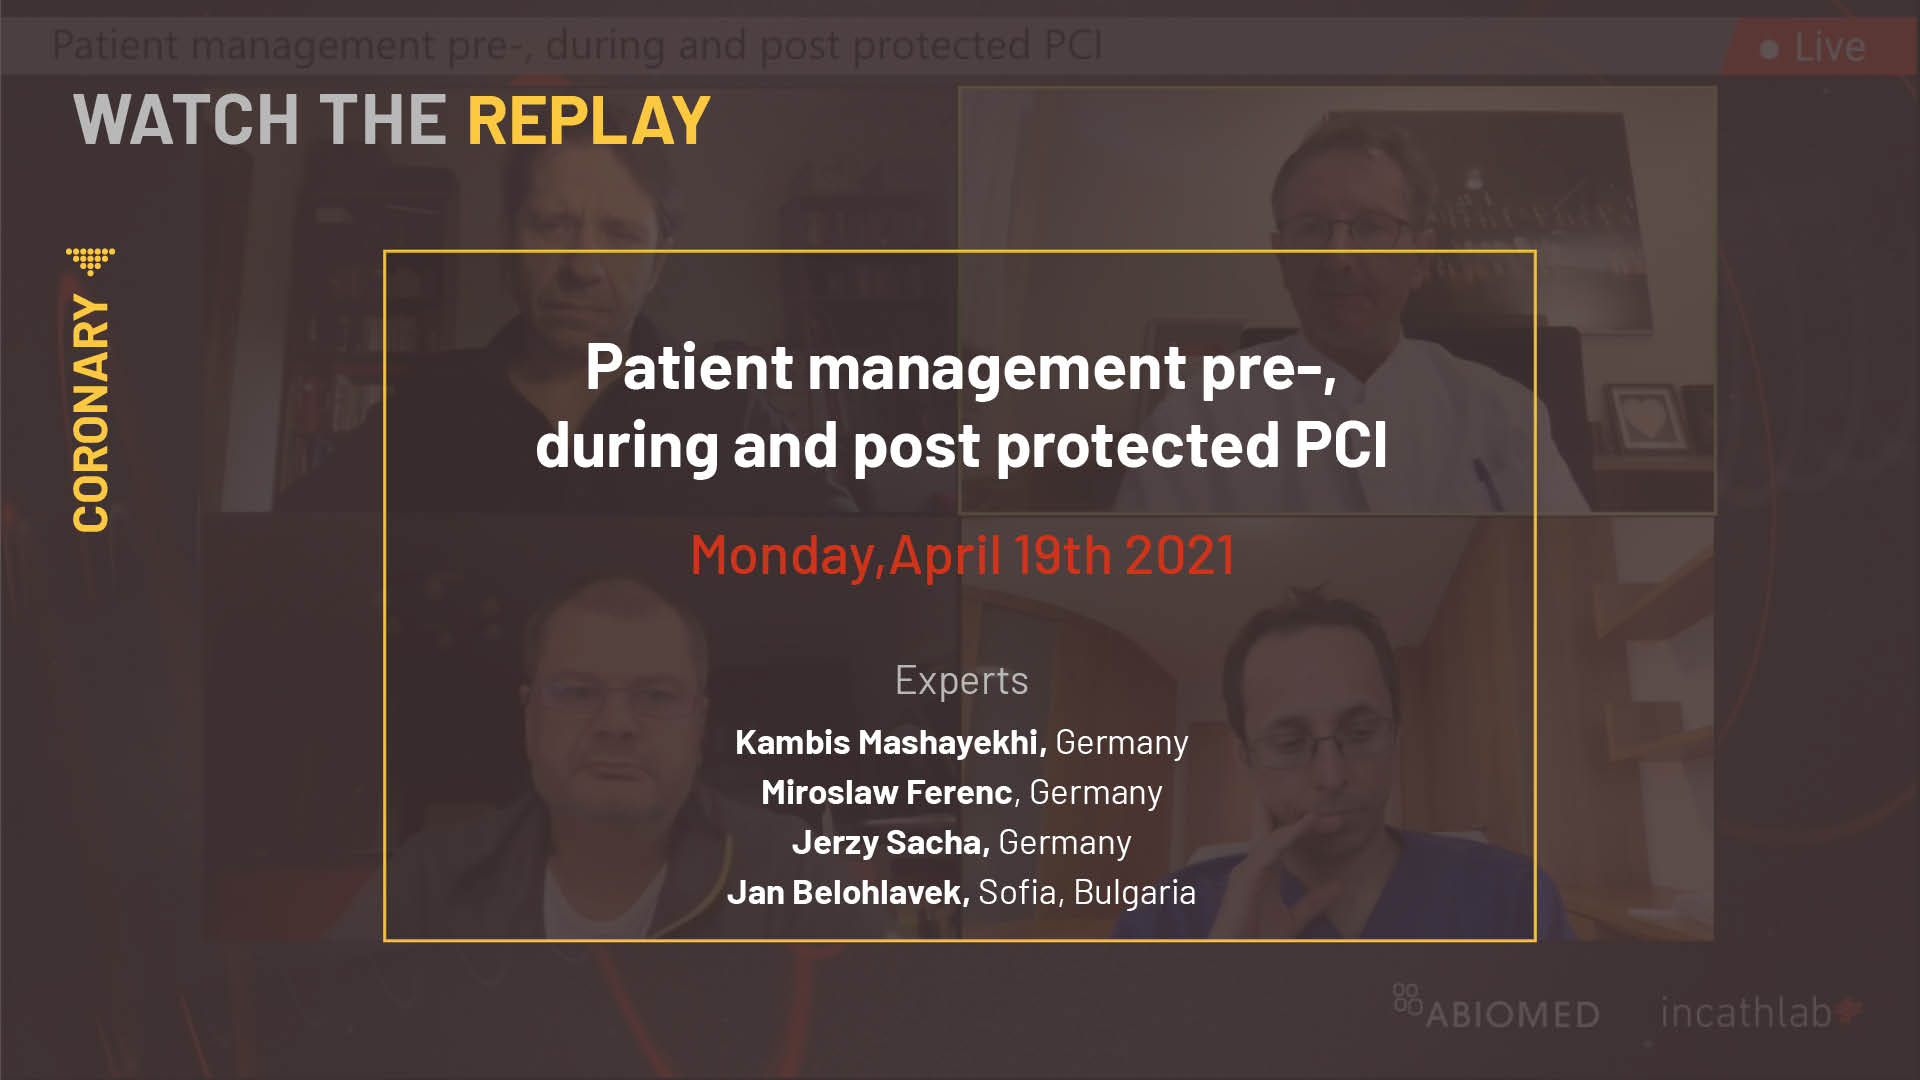 Patient management pre-, during and post protected PCI